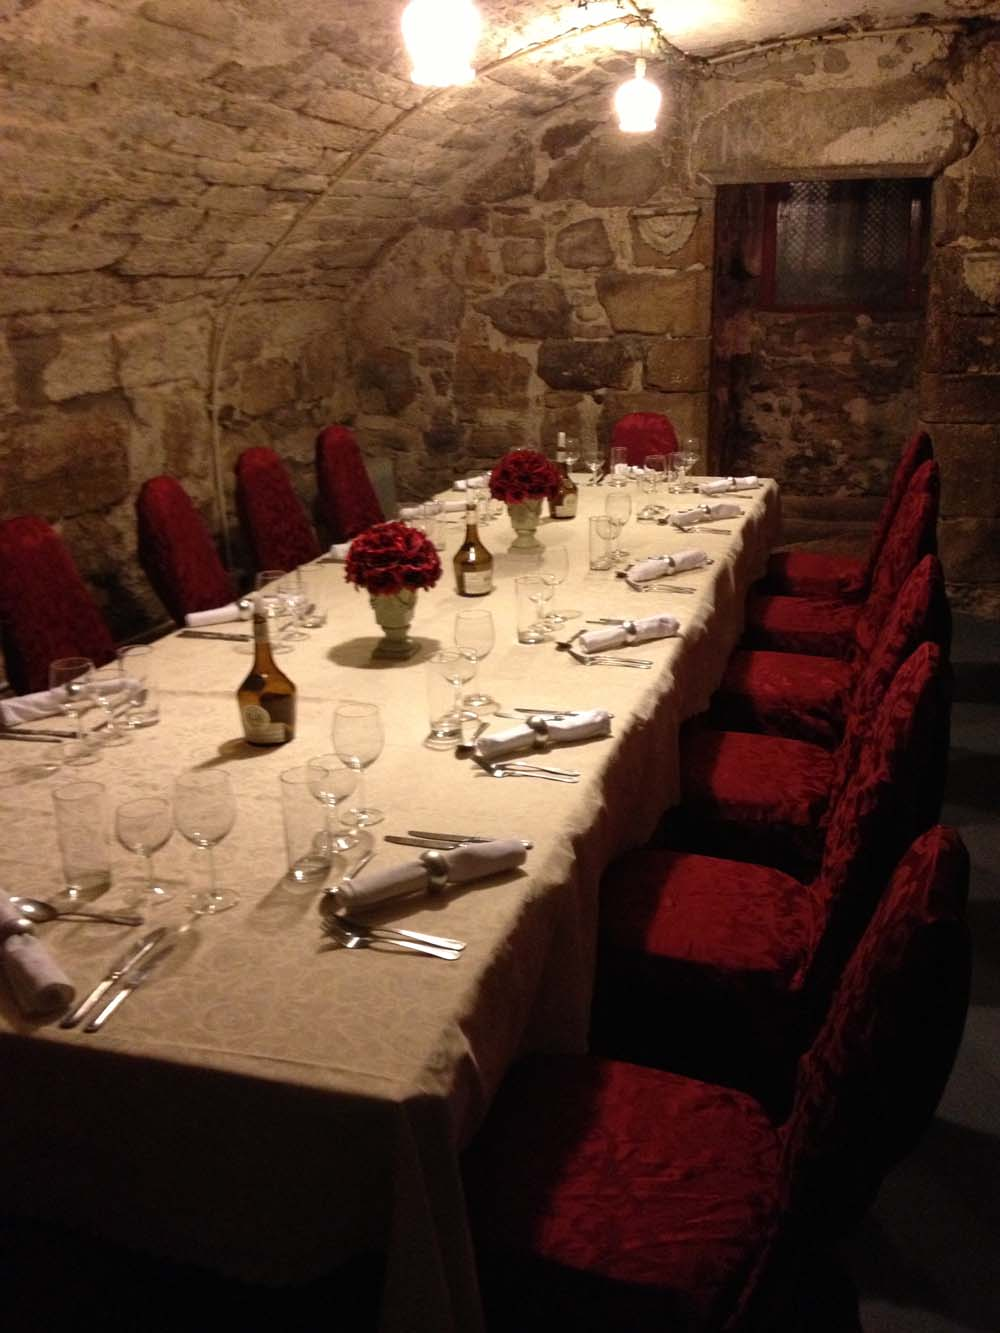 Dinner in the Cellar